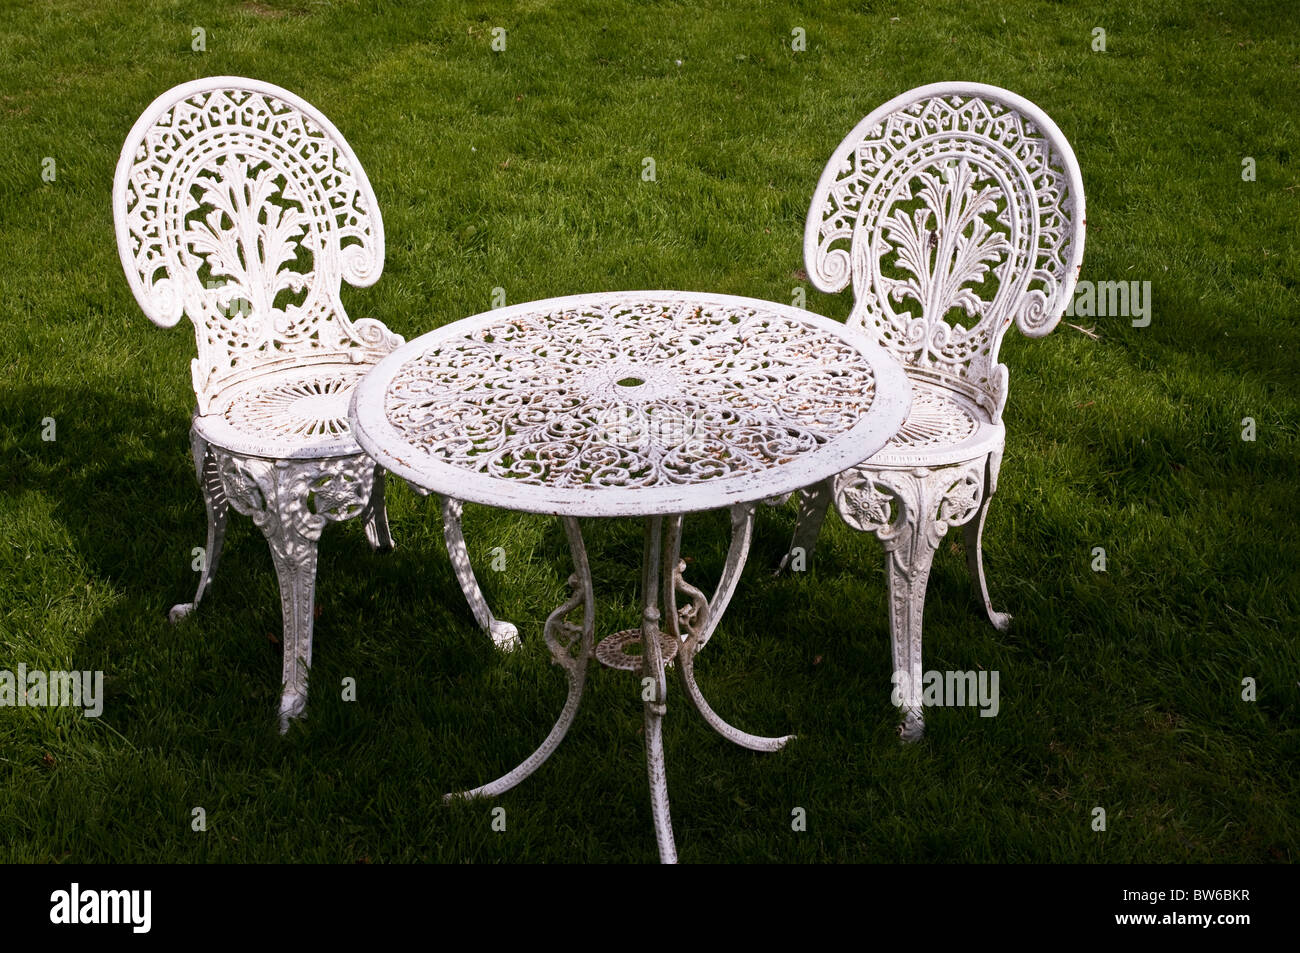 Astounding Old Style Metal Chairs And Table On A Garden Lawn Dartmoor Download Free Architecture Designs Scobabritishbridgeorg